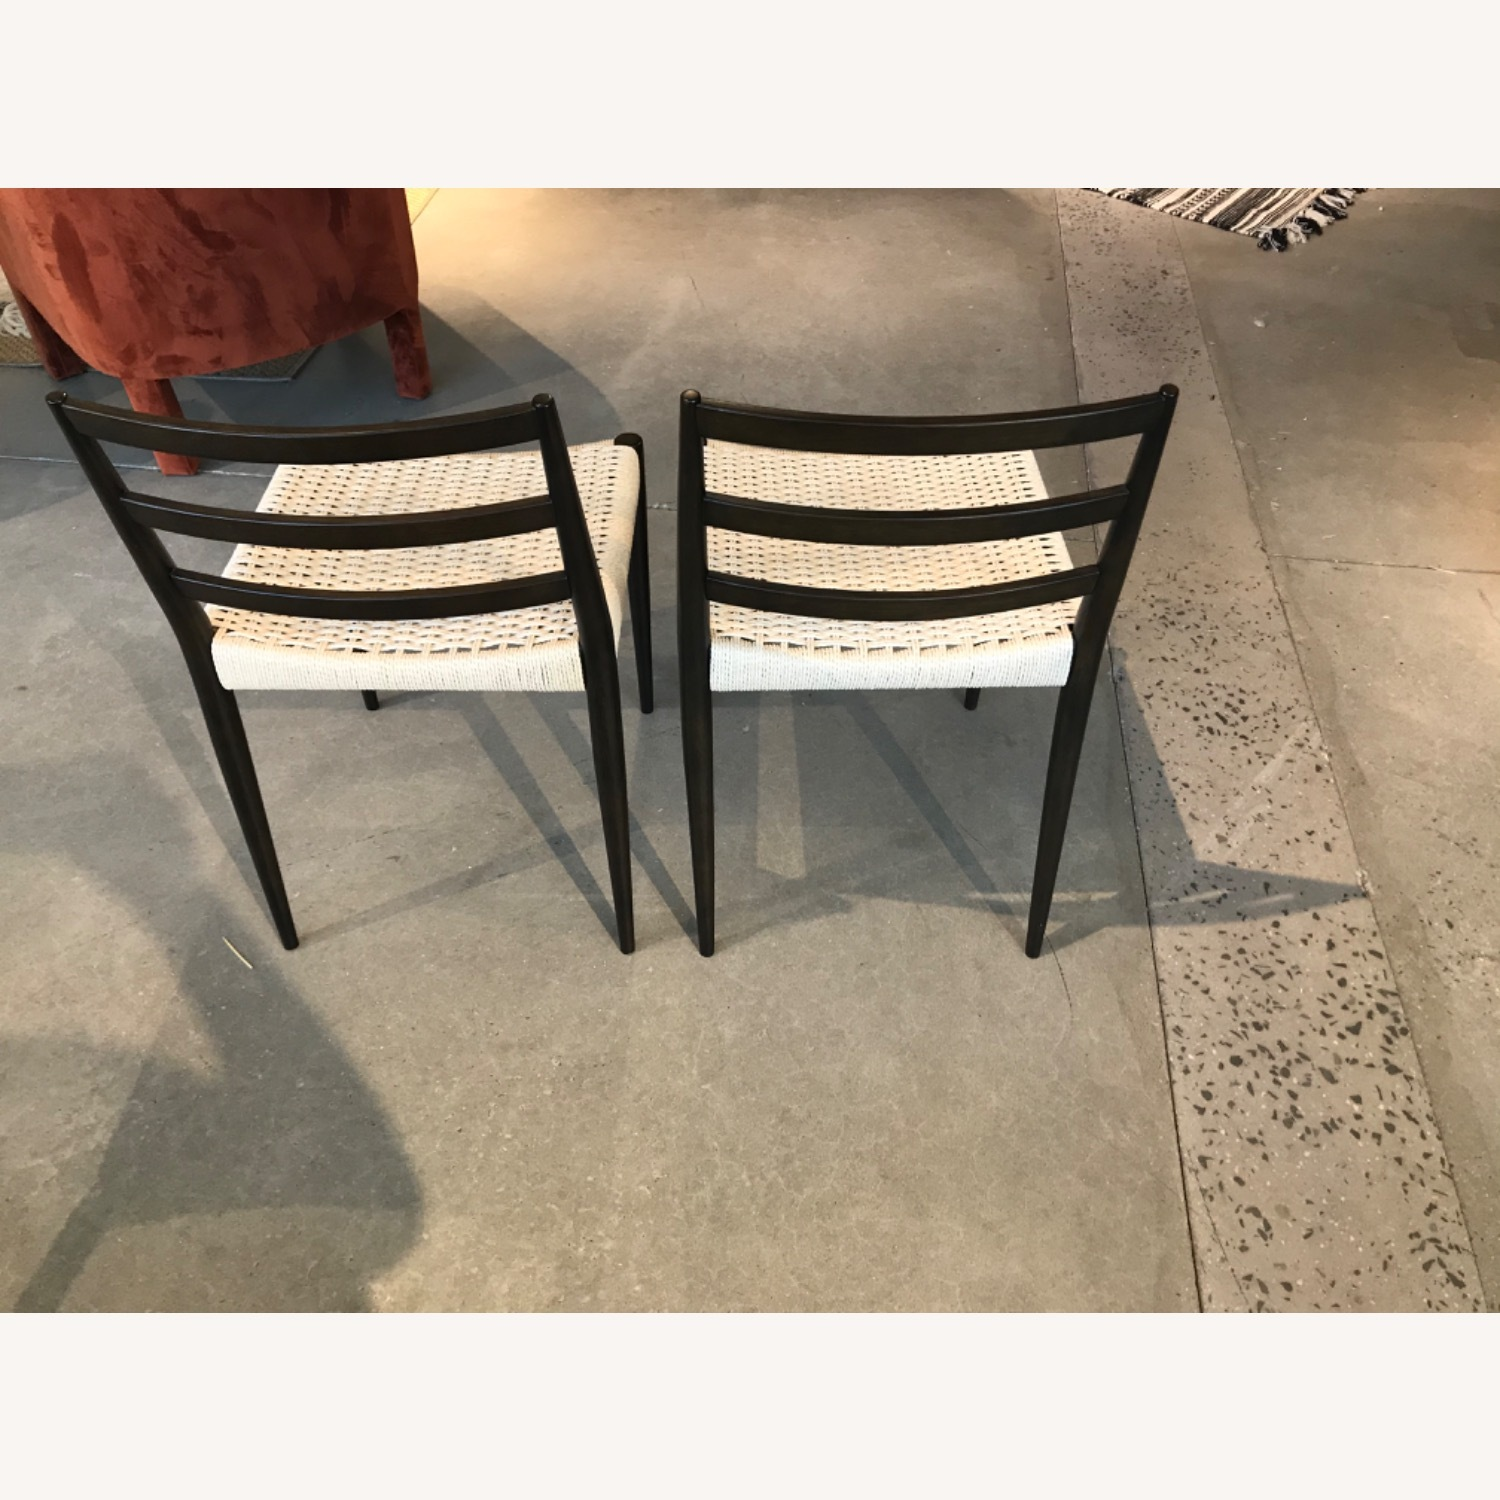 West Elm Holland Woven Dining Chair (Set of 2) - image-5